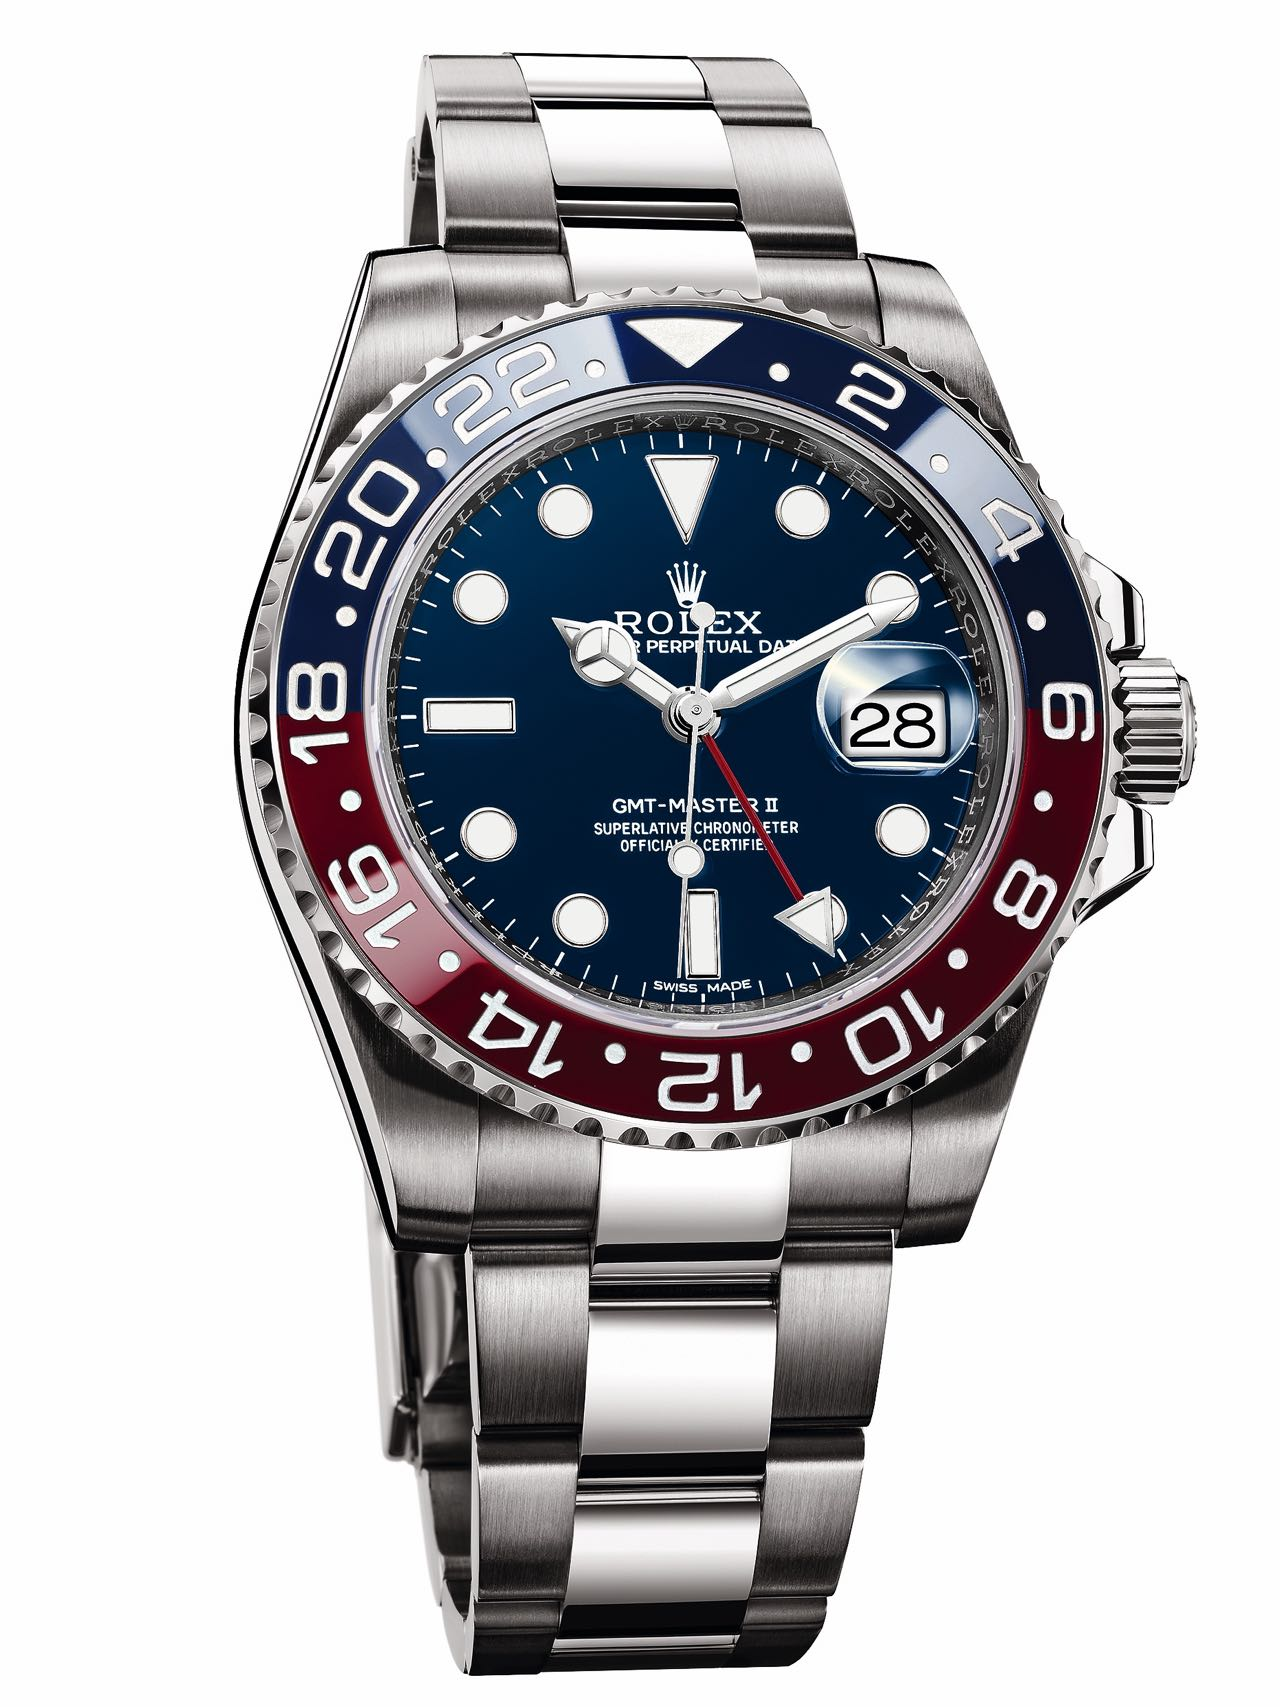 6d881754c Rolex Oyster Perpetual GMT-Master II, 2014, in 18 ct white gold, with red  and blue bezel